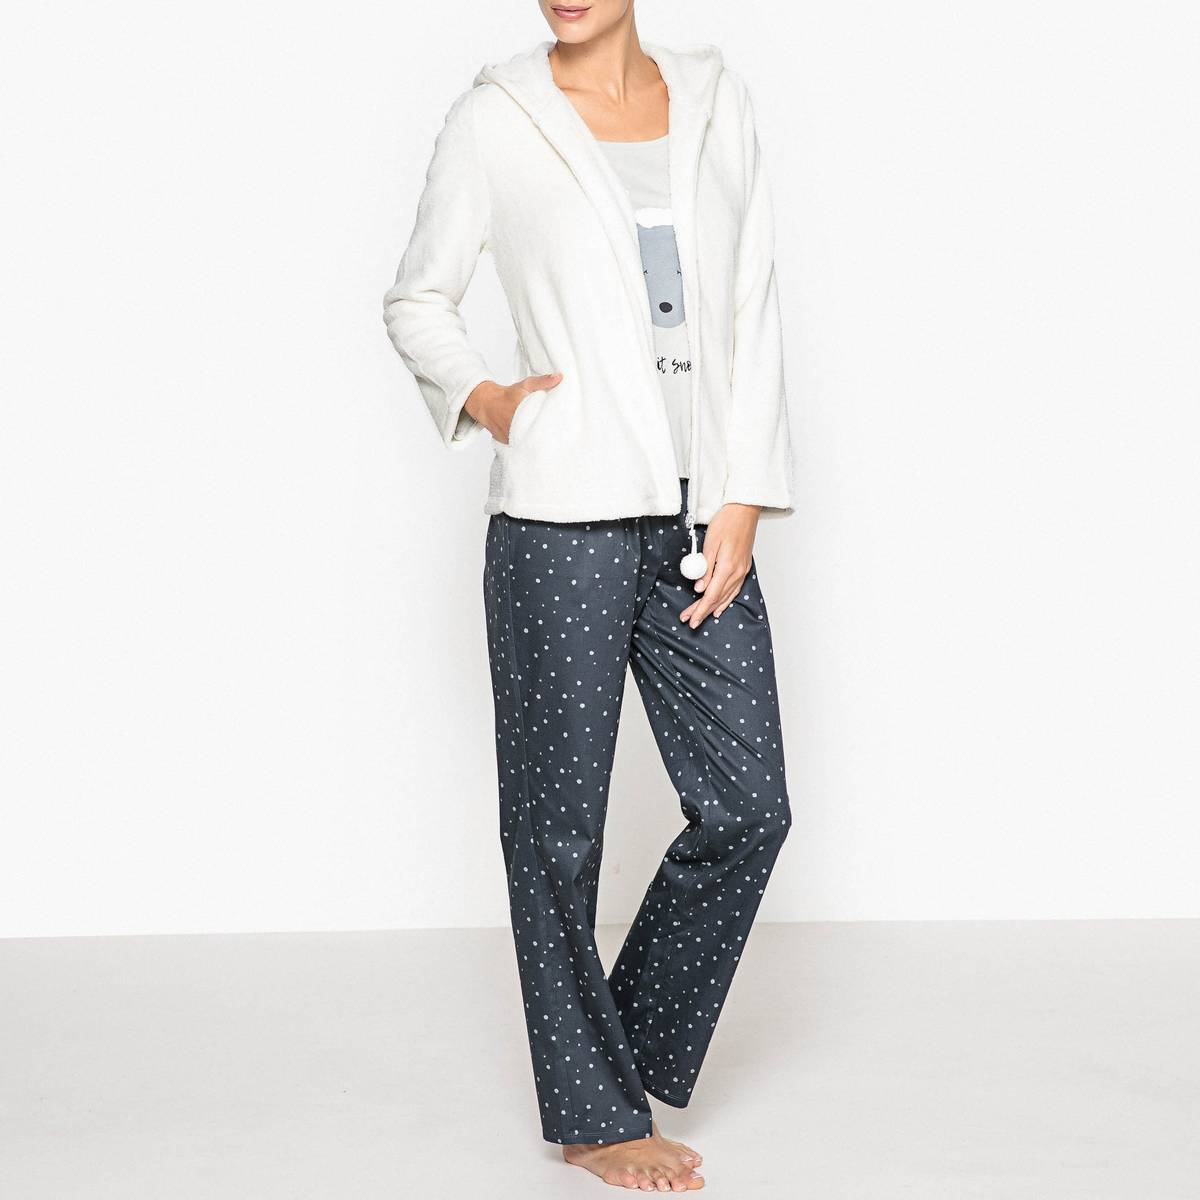 La Redoute Collections Pijama de 3 prendas blanco